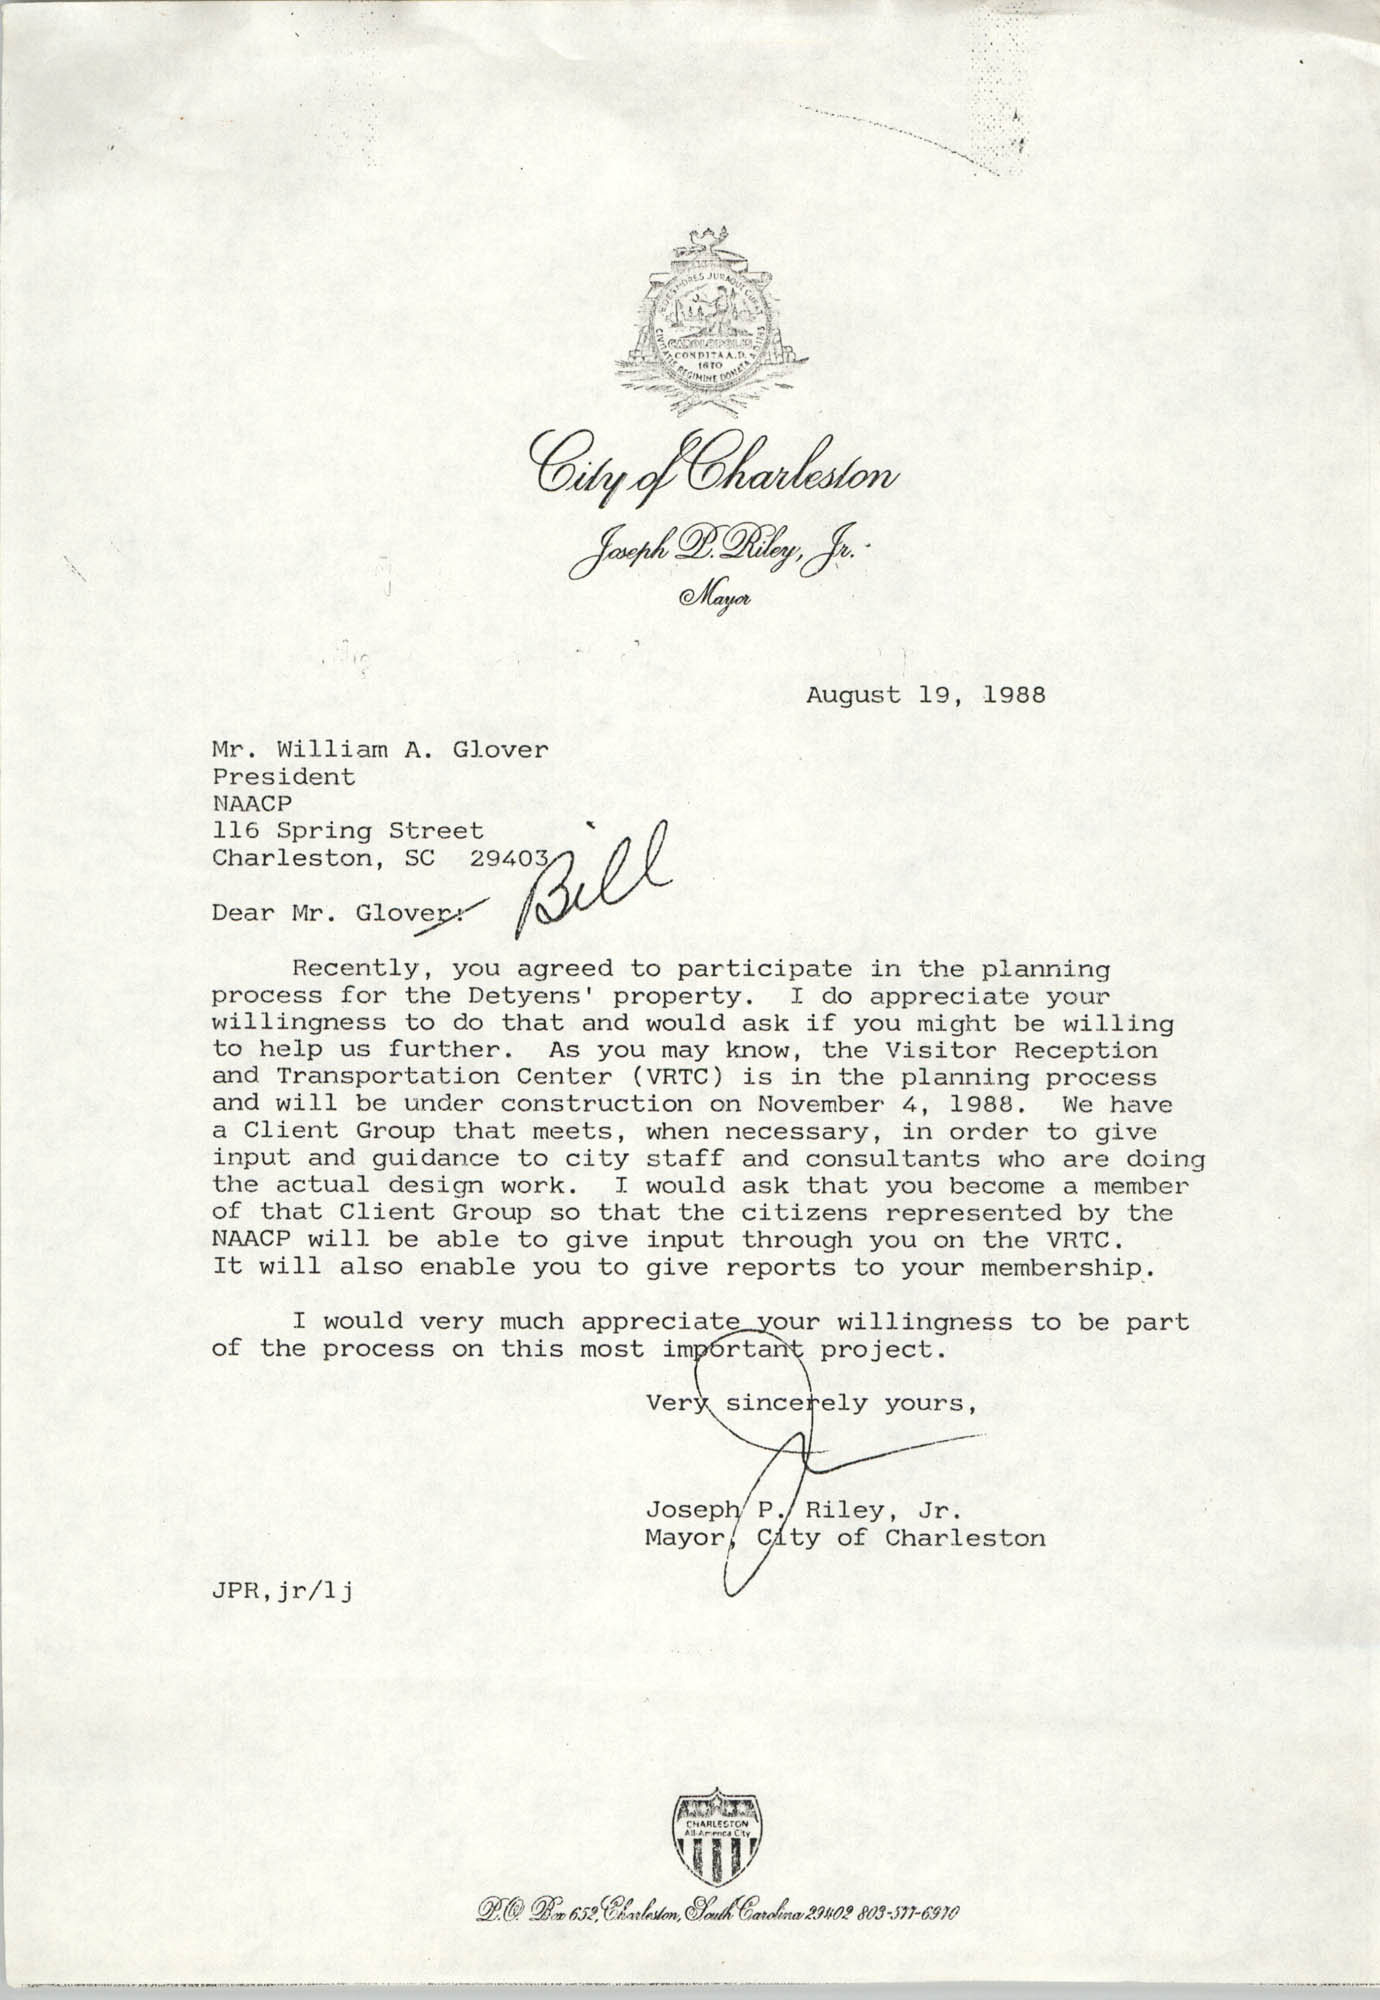 Letter from Joseph P. Riley, Jr. to William A. Glover, August 19, 1988